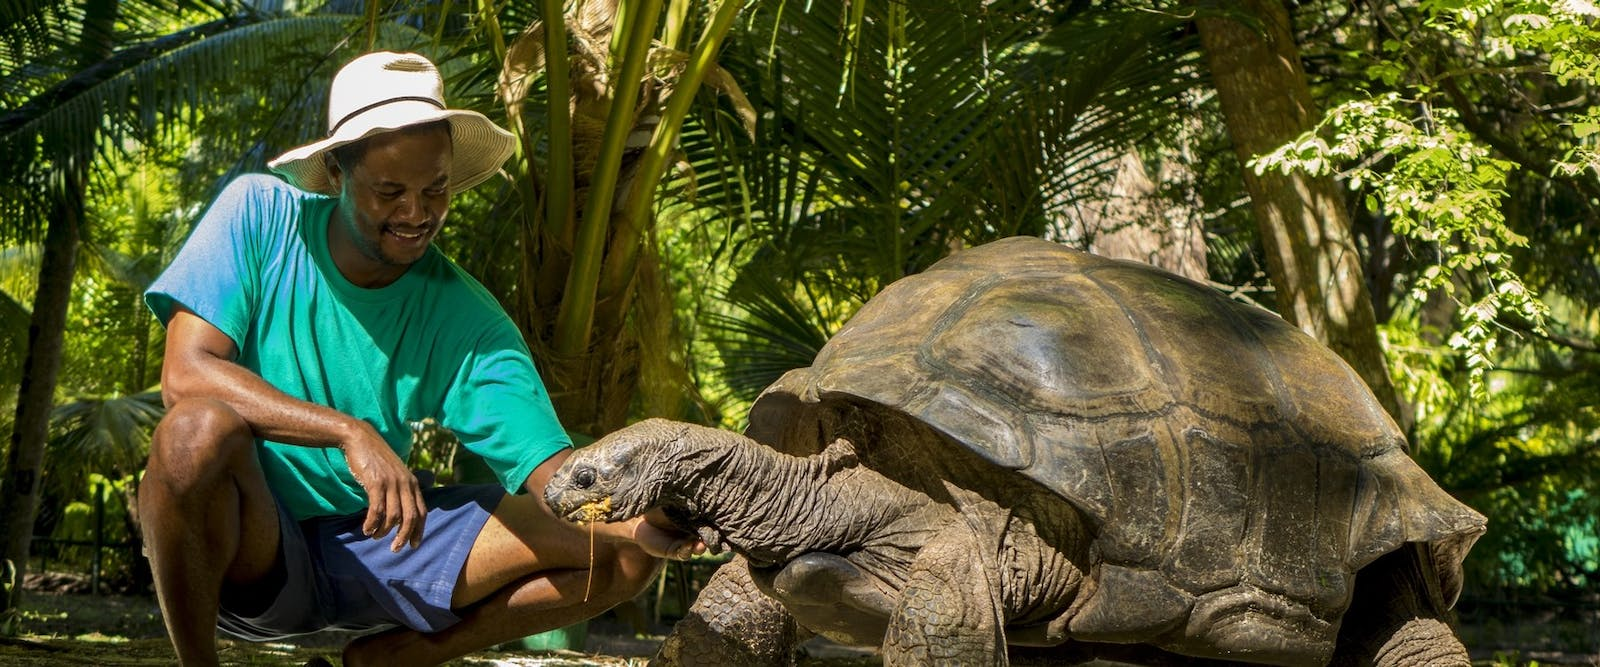 Giant Tortoise at Denis Private Island, Seychelles